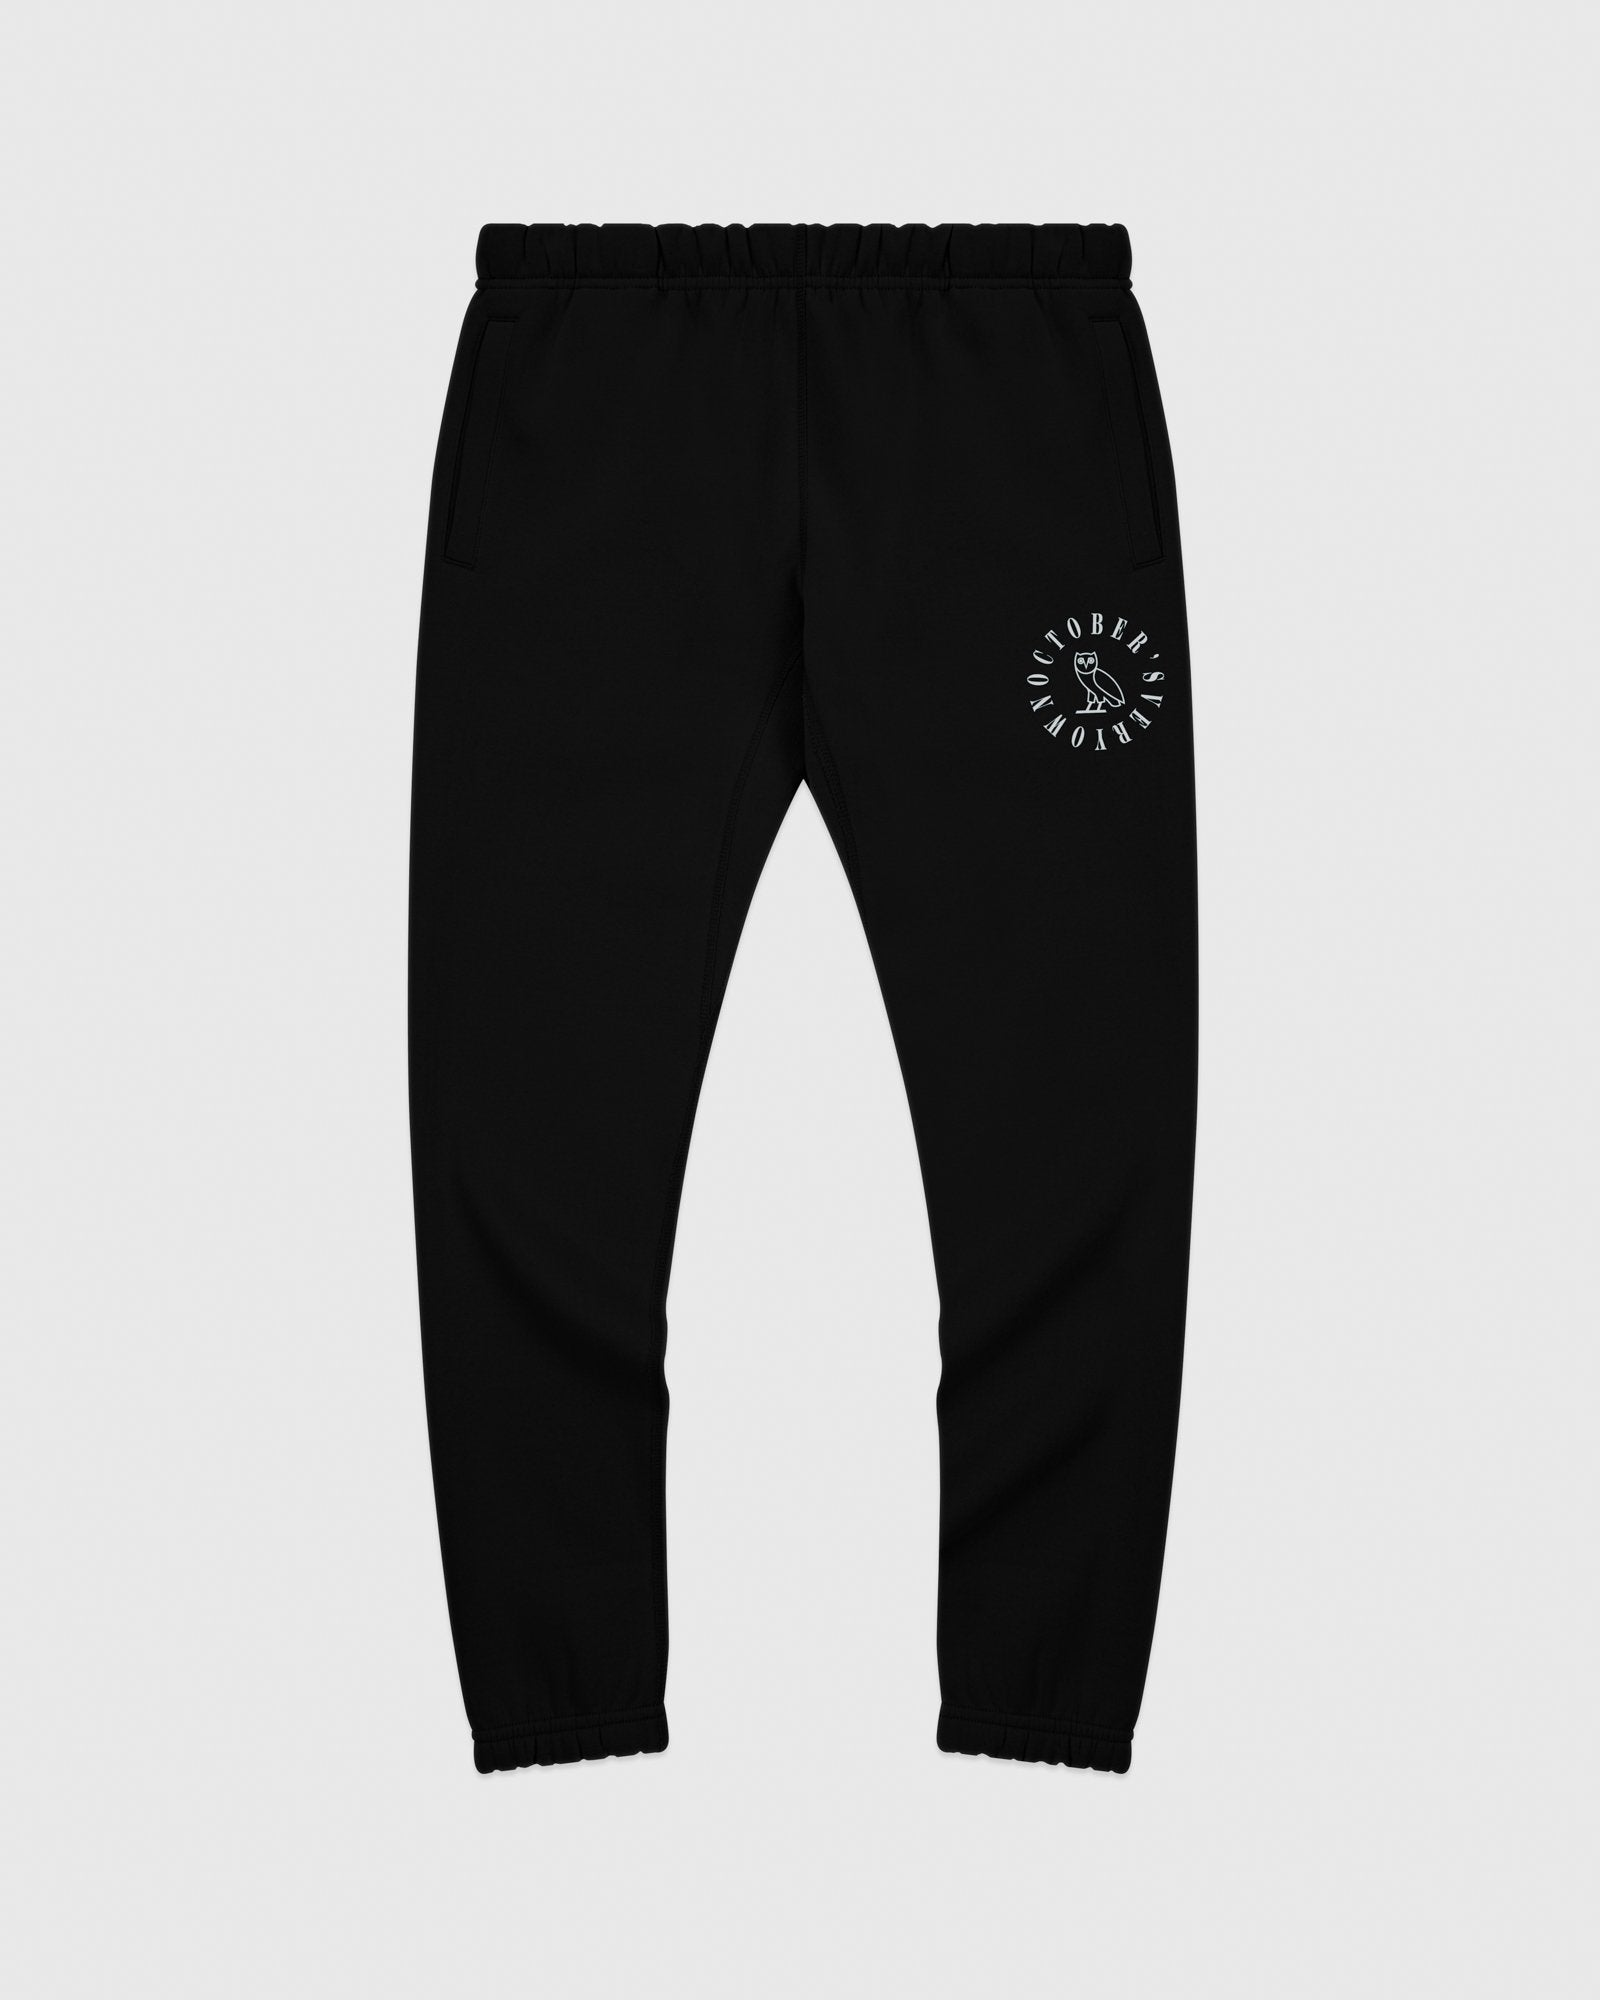 CIRCLE WORDMARK SWEATPANT - BLACK IMAGE #1